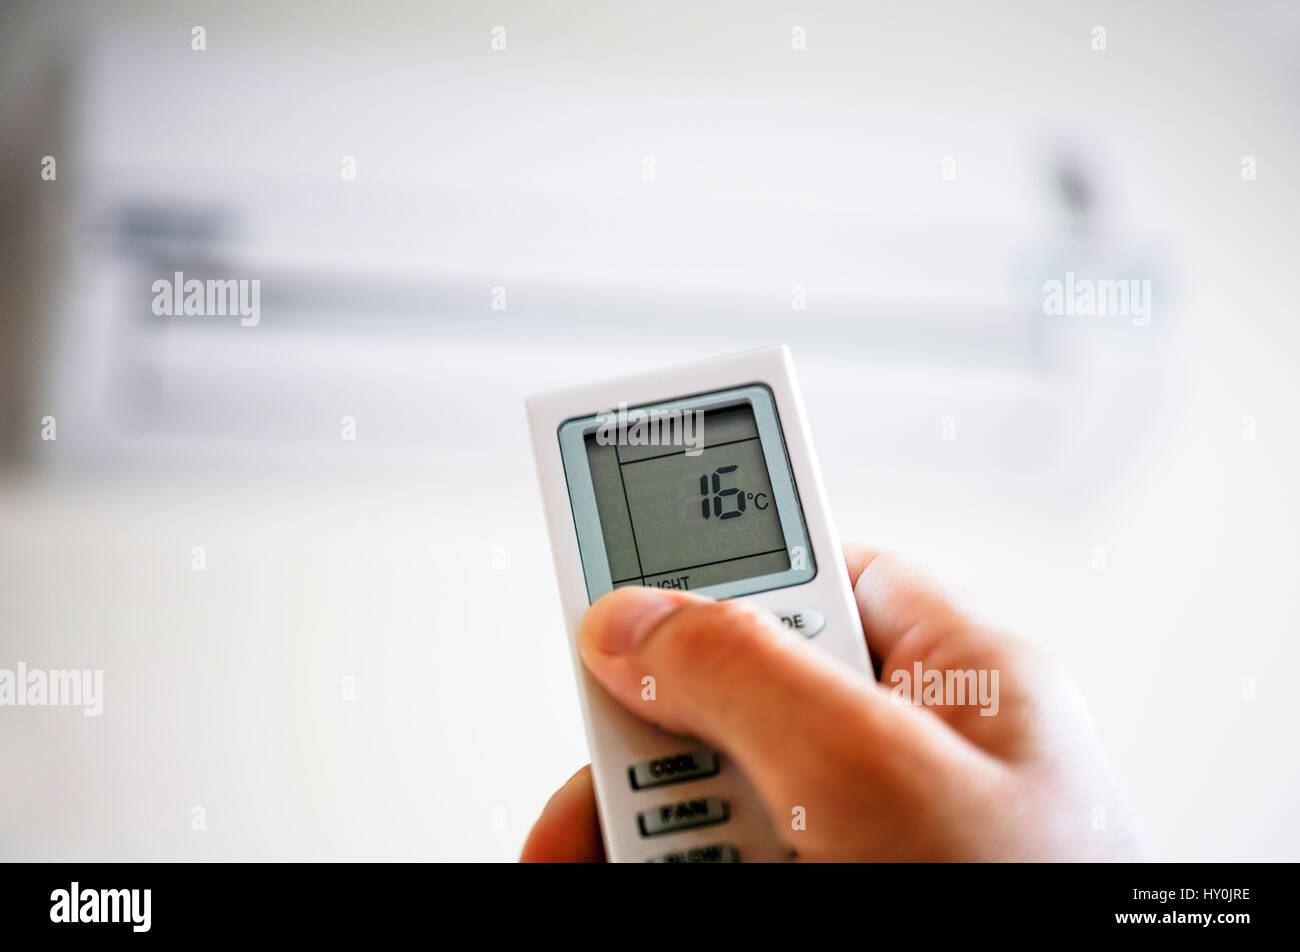 Person hand using remote control of air conditioner. - Stock Image